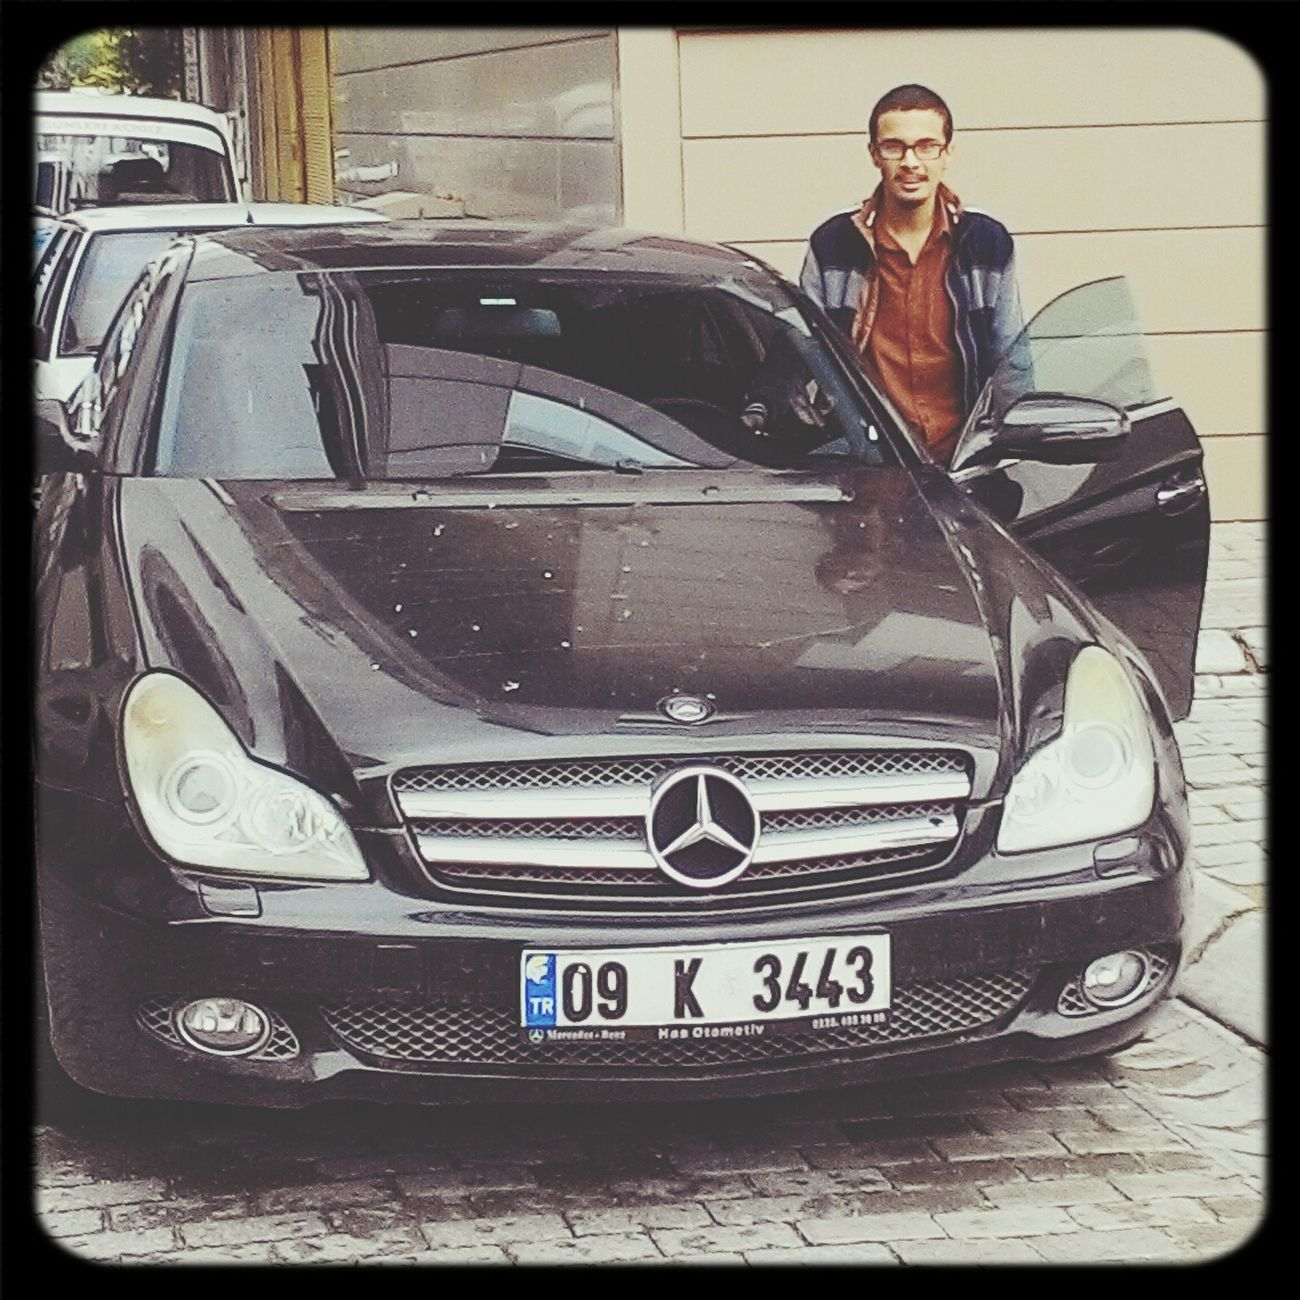 CLS320 MERCEDES YENİ OYUNCAK ;) First Eyeem Photo